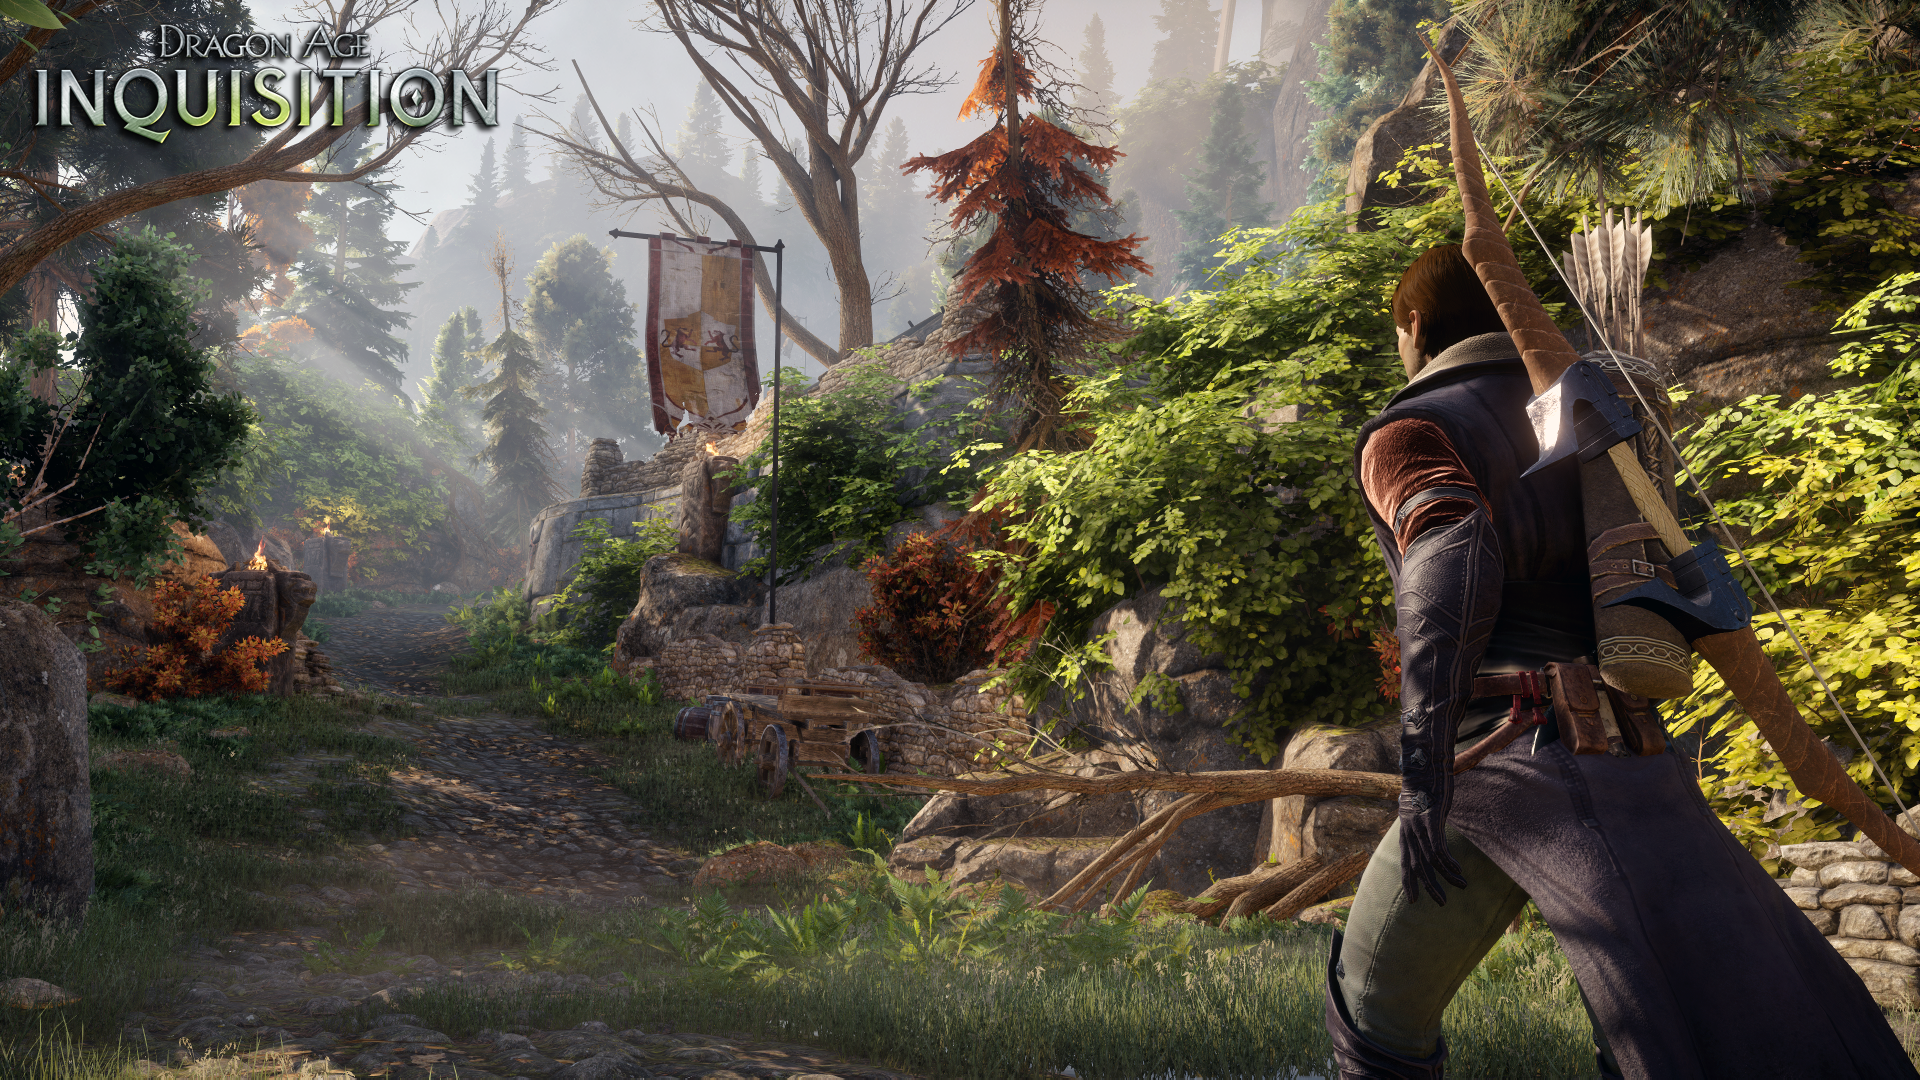 Dragon Age Inquisition Wallpaper Hd 46384 1920x1080px